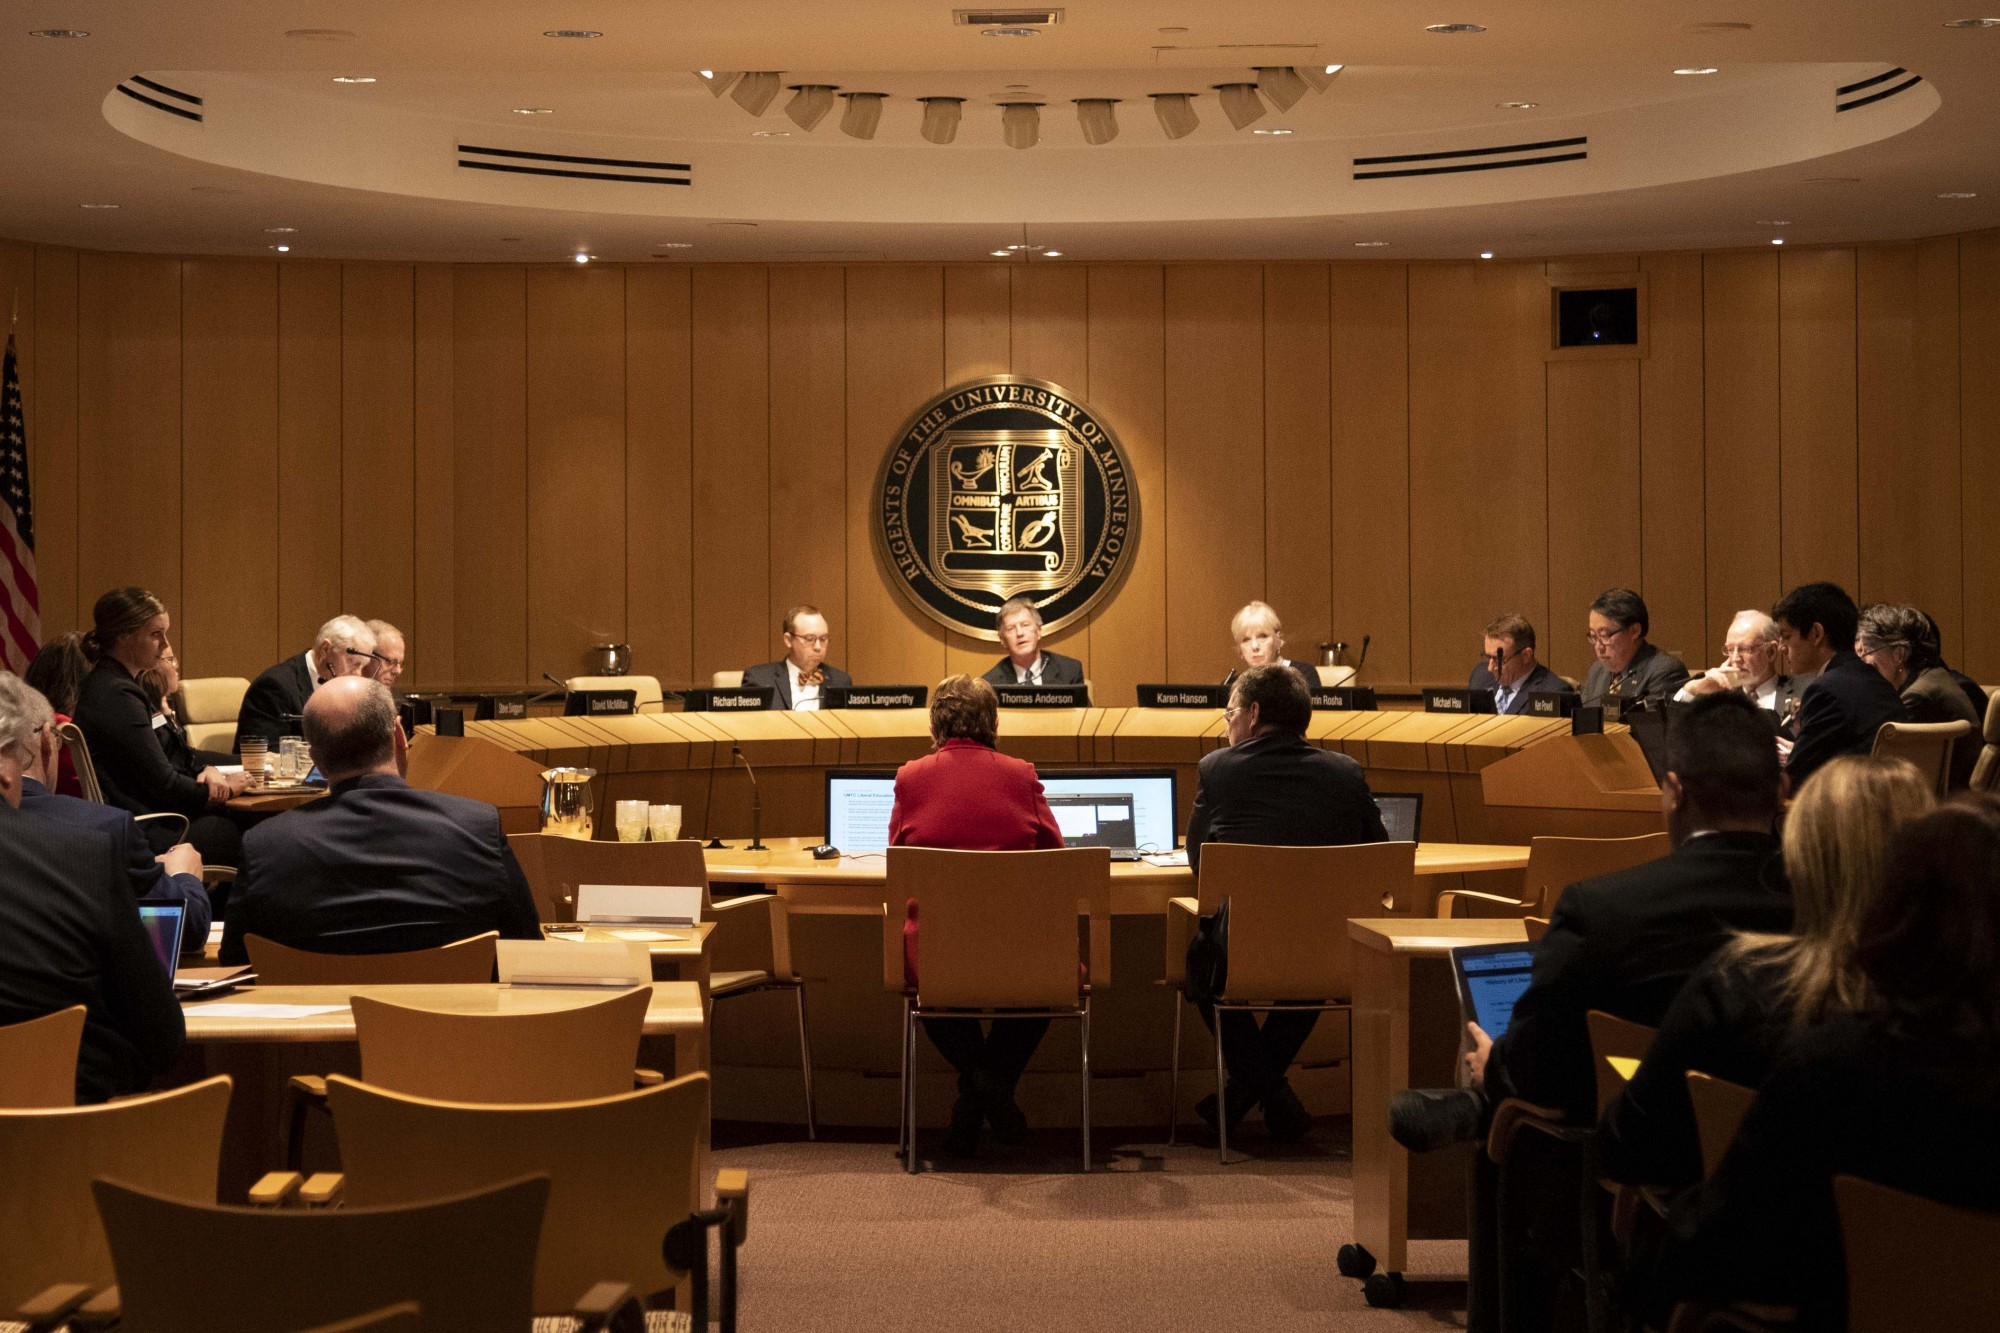 The Board of Regents convene for their December 2019 meeting at the McNamara Alumni Center on Thursday, Dec. 12.